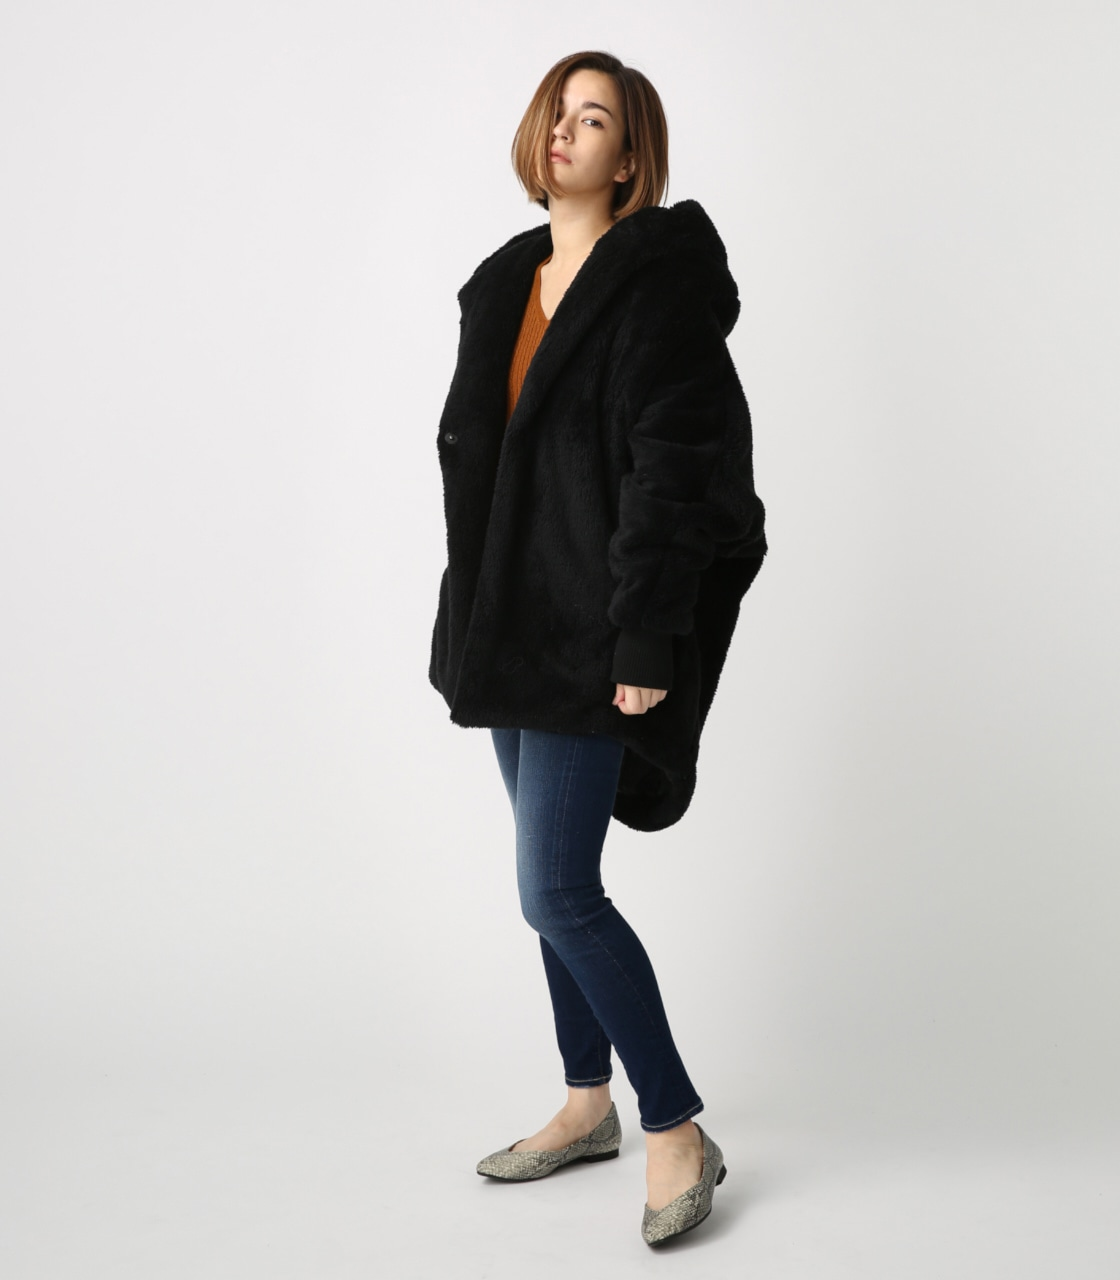 【AZUL BY MOUSSY】ボアショールカラーロングコート【MOOK44掲載 99031】 詳細画像 BLK 4